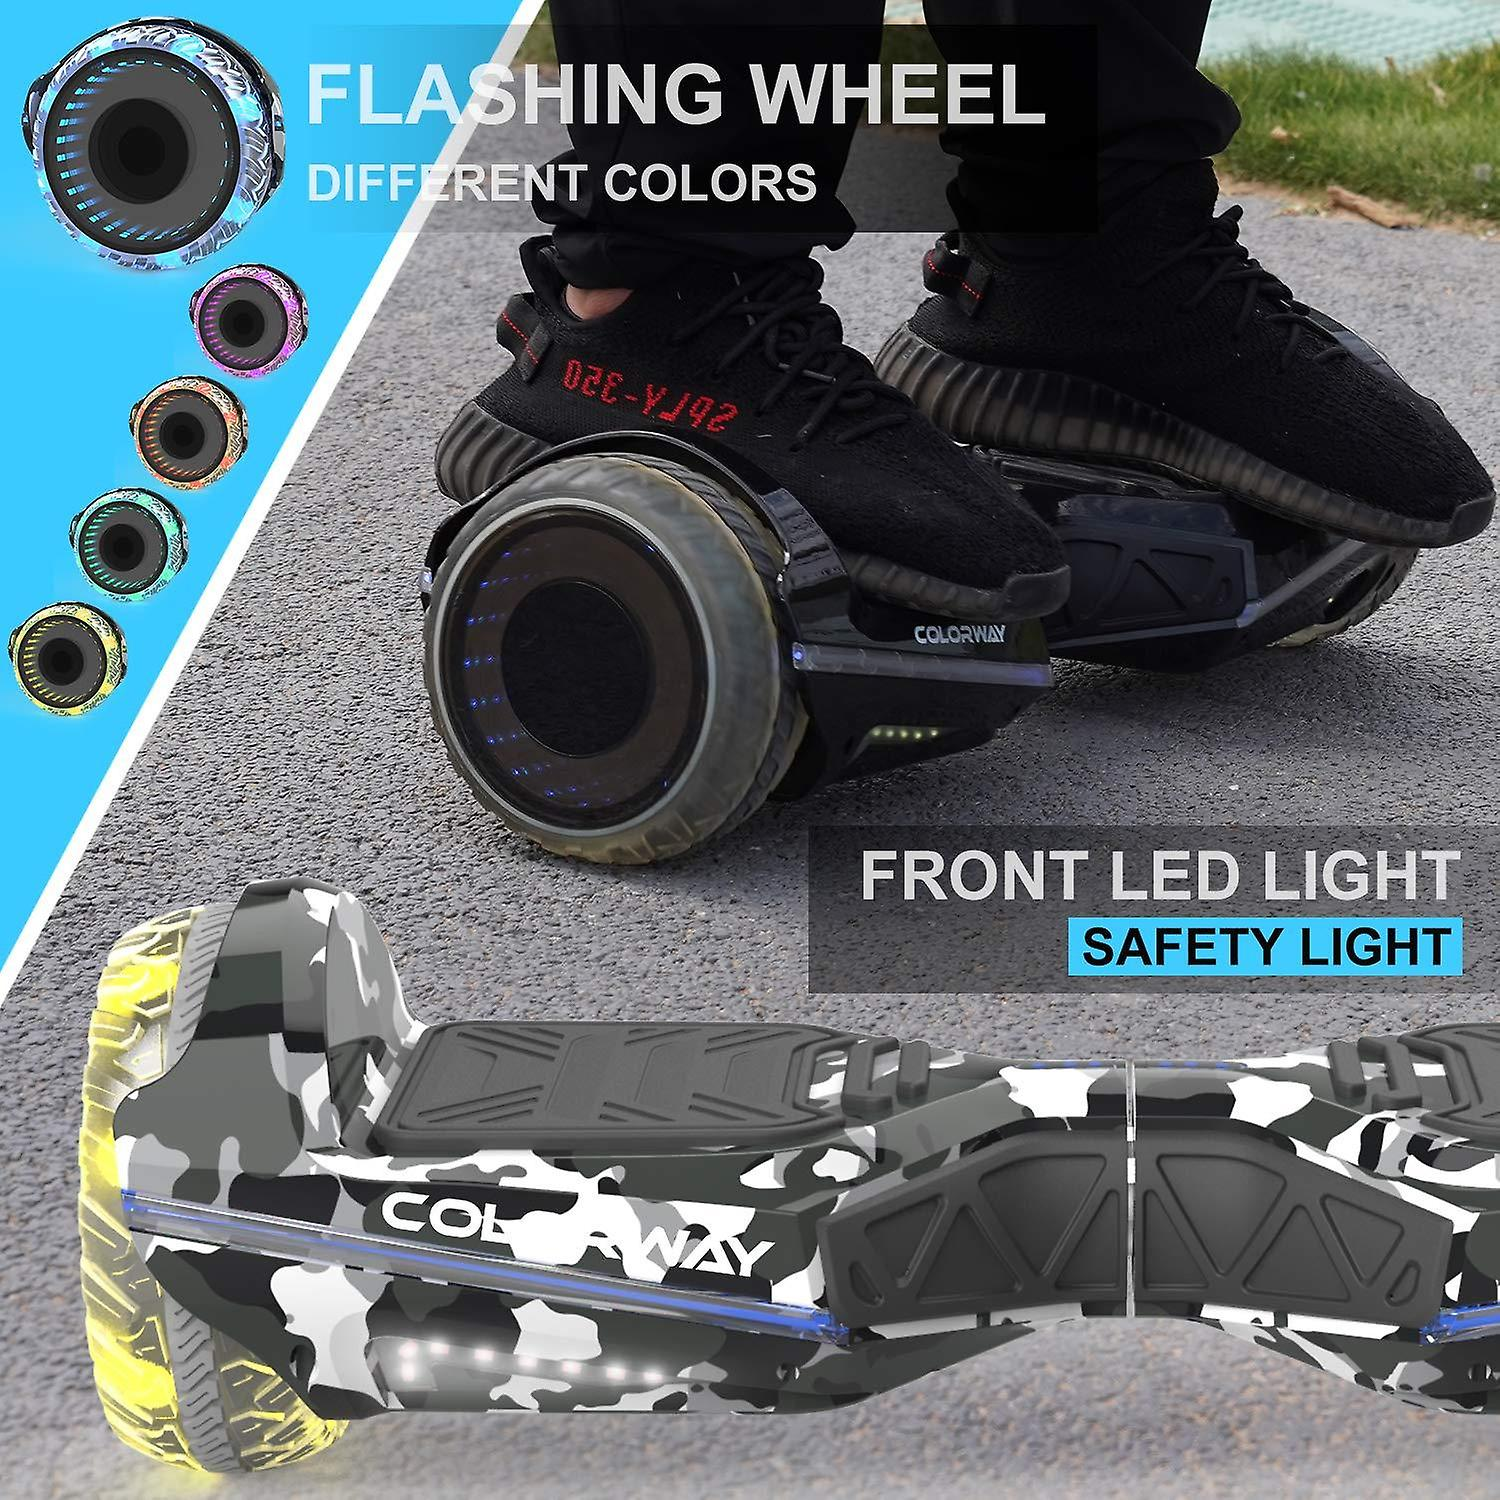 COLORWAY CX911 Advanced Premium Self Balancing Scooter SUV 6.5''- Segway Electric Scooter Off-Road with Bluetooth&App - Led Wheels - Motor 700W - EU Safety Standard - Gift For Kids